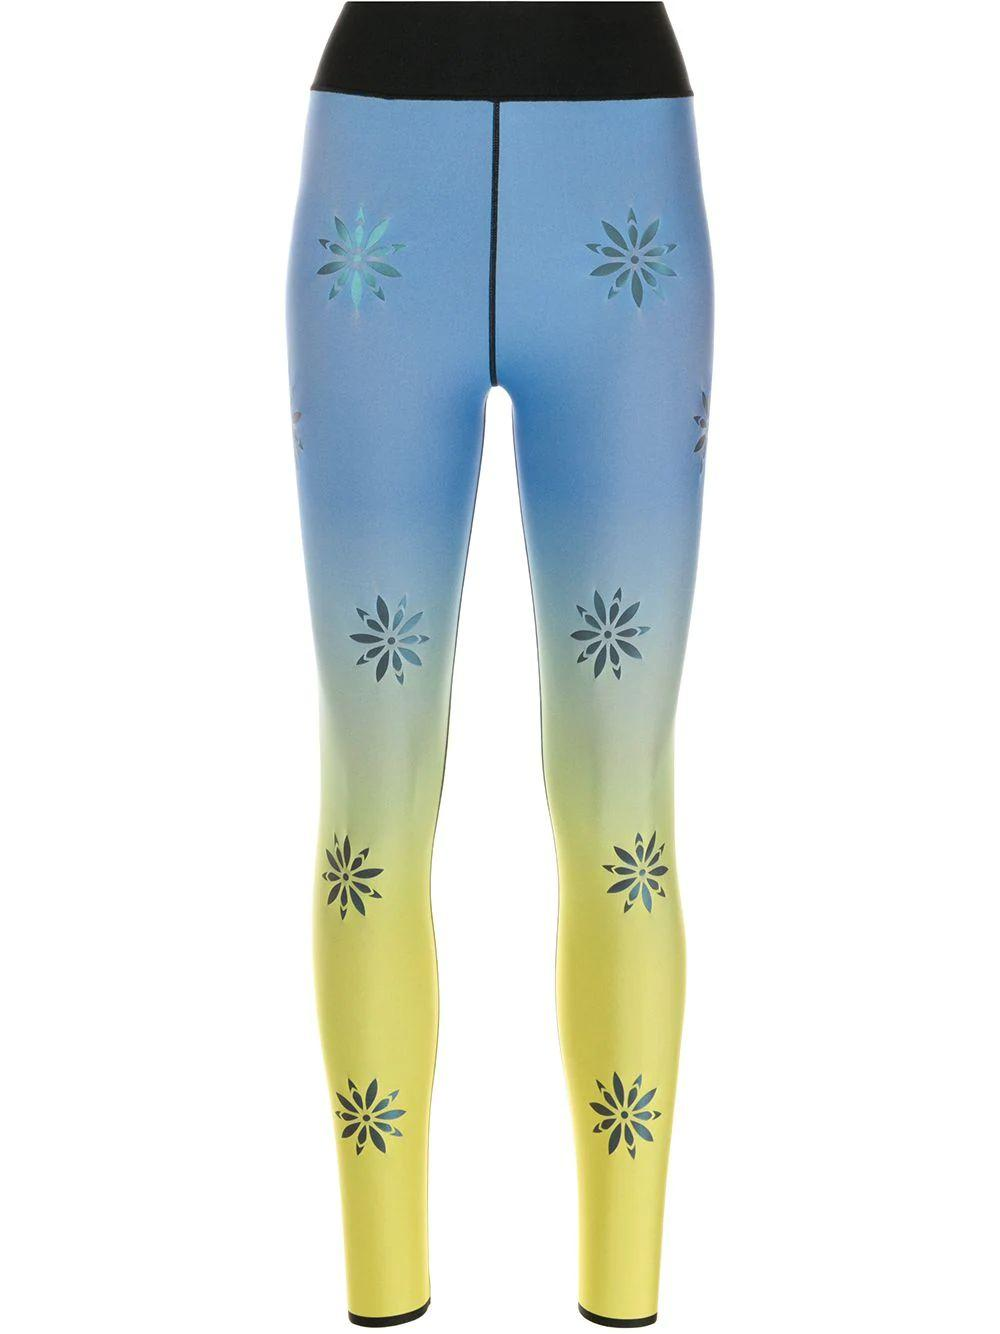 Ko Daisy Ultra High Leggings